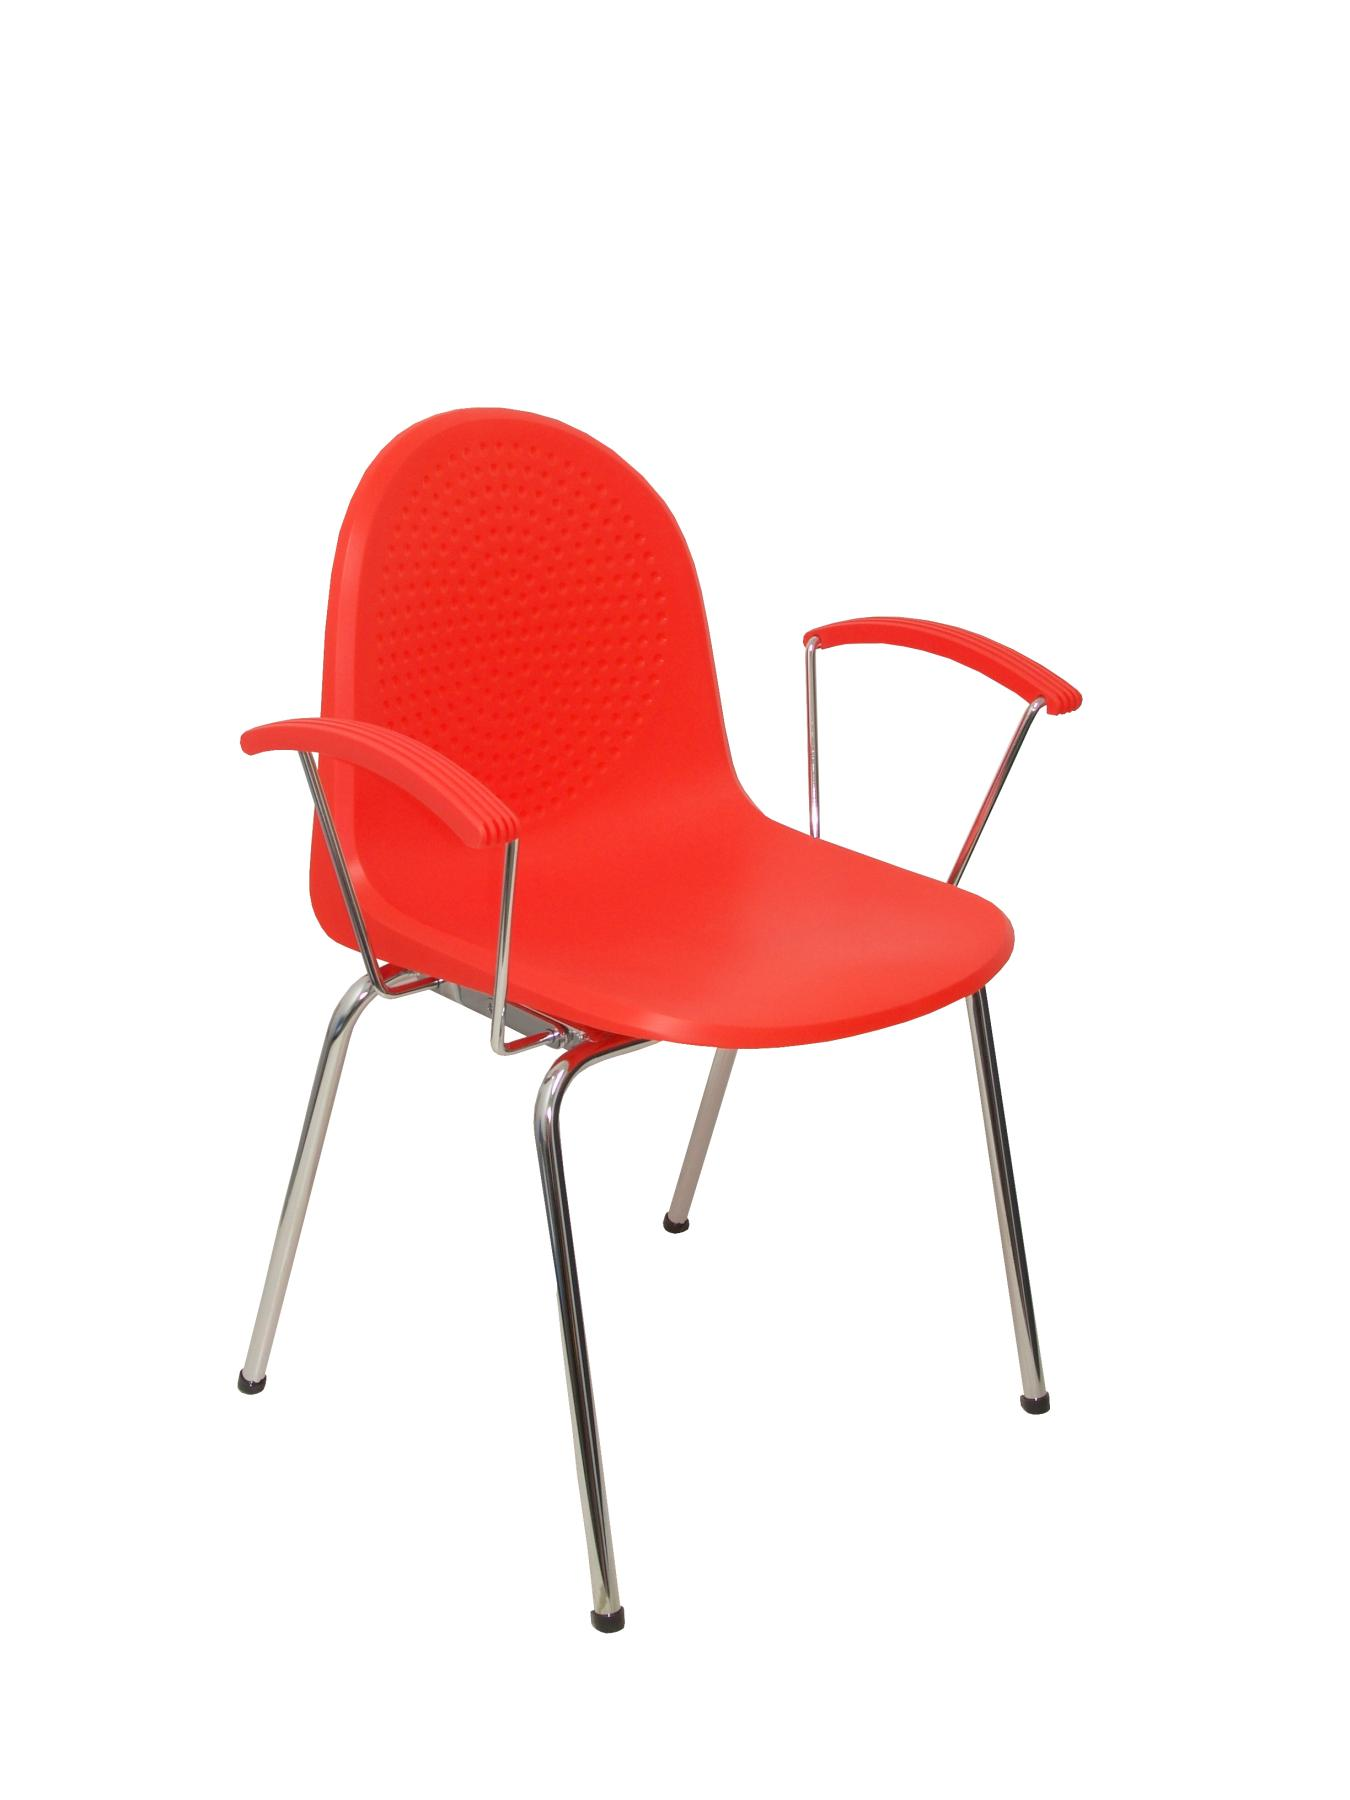 Visitor Chair Desk Ergonomic With Arms Fixed Chrome And Plastic Chrome Bold Up Seat And Backstop Structure Color Na